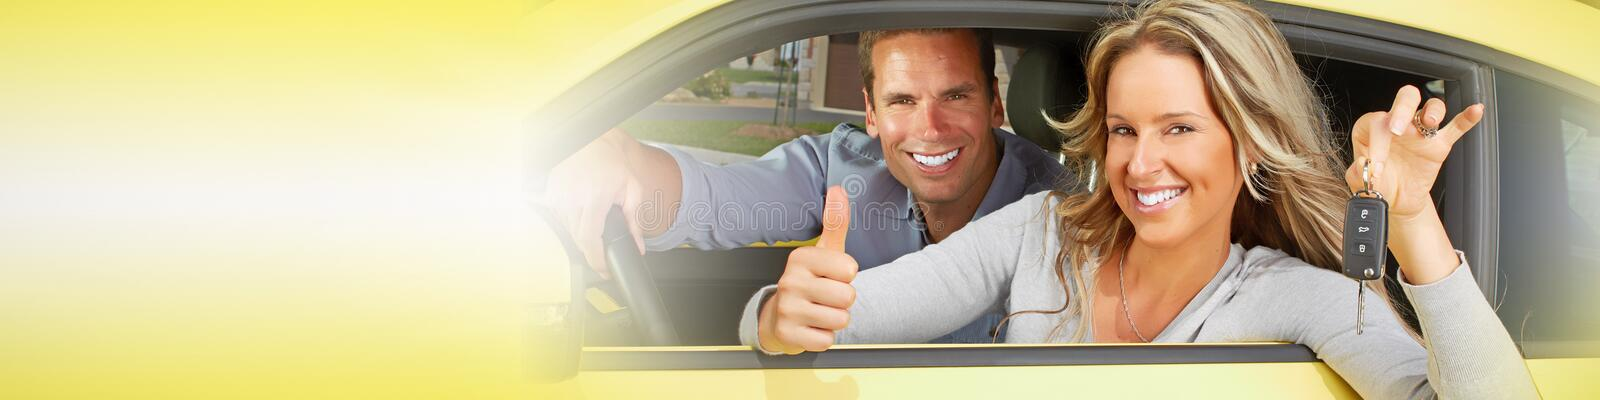 Driver woman. Young happy smiling driver girl with car key royalty free stock photo